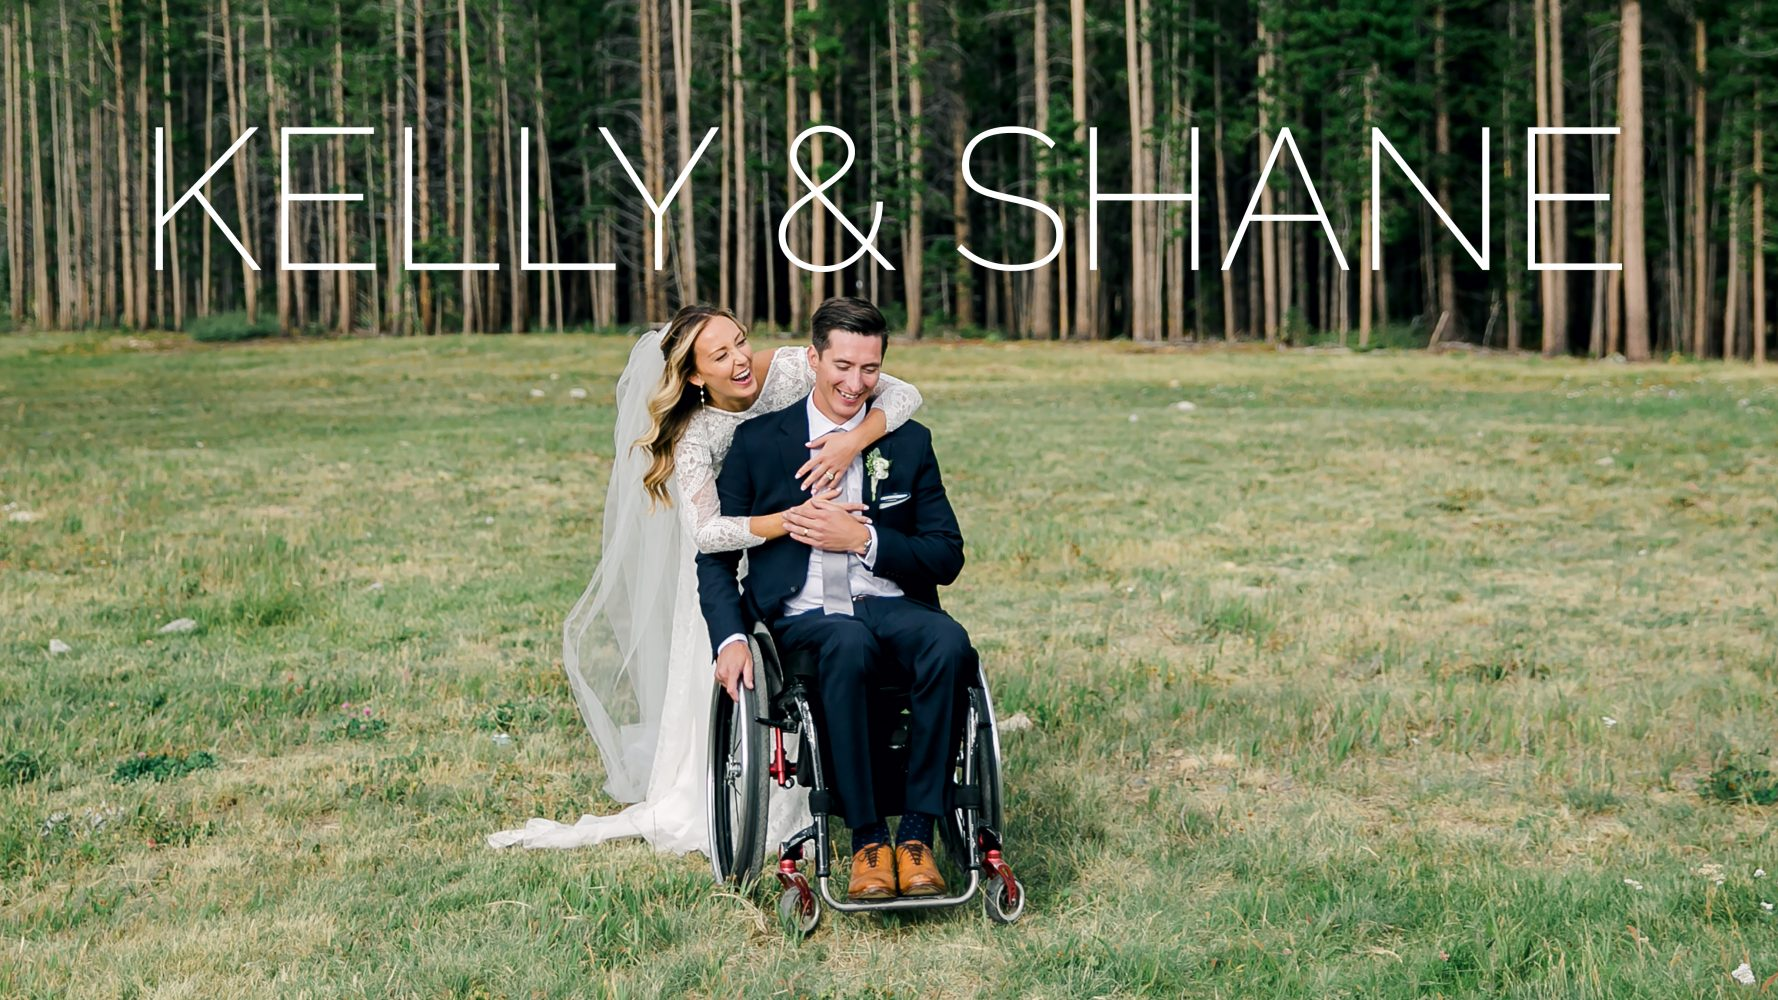 Kelly + Shane | Breckenridge, Colorado | TenMile Station